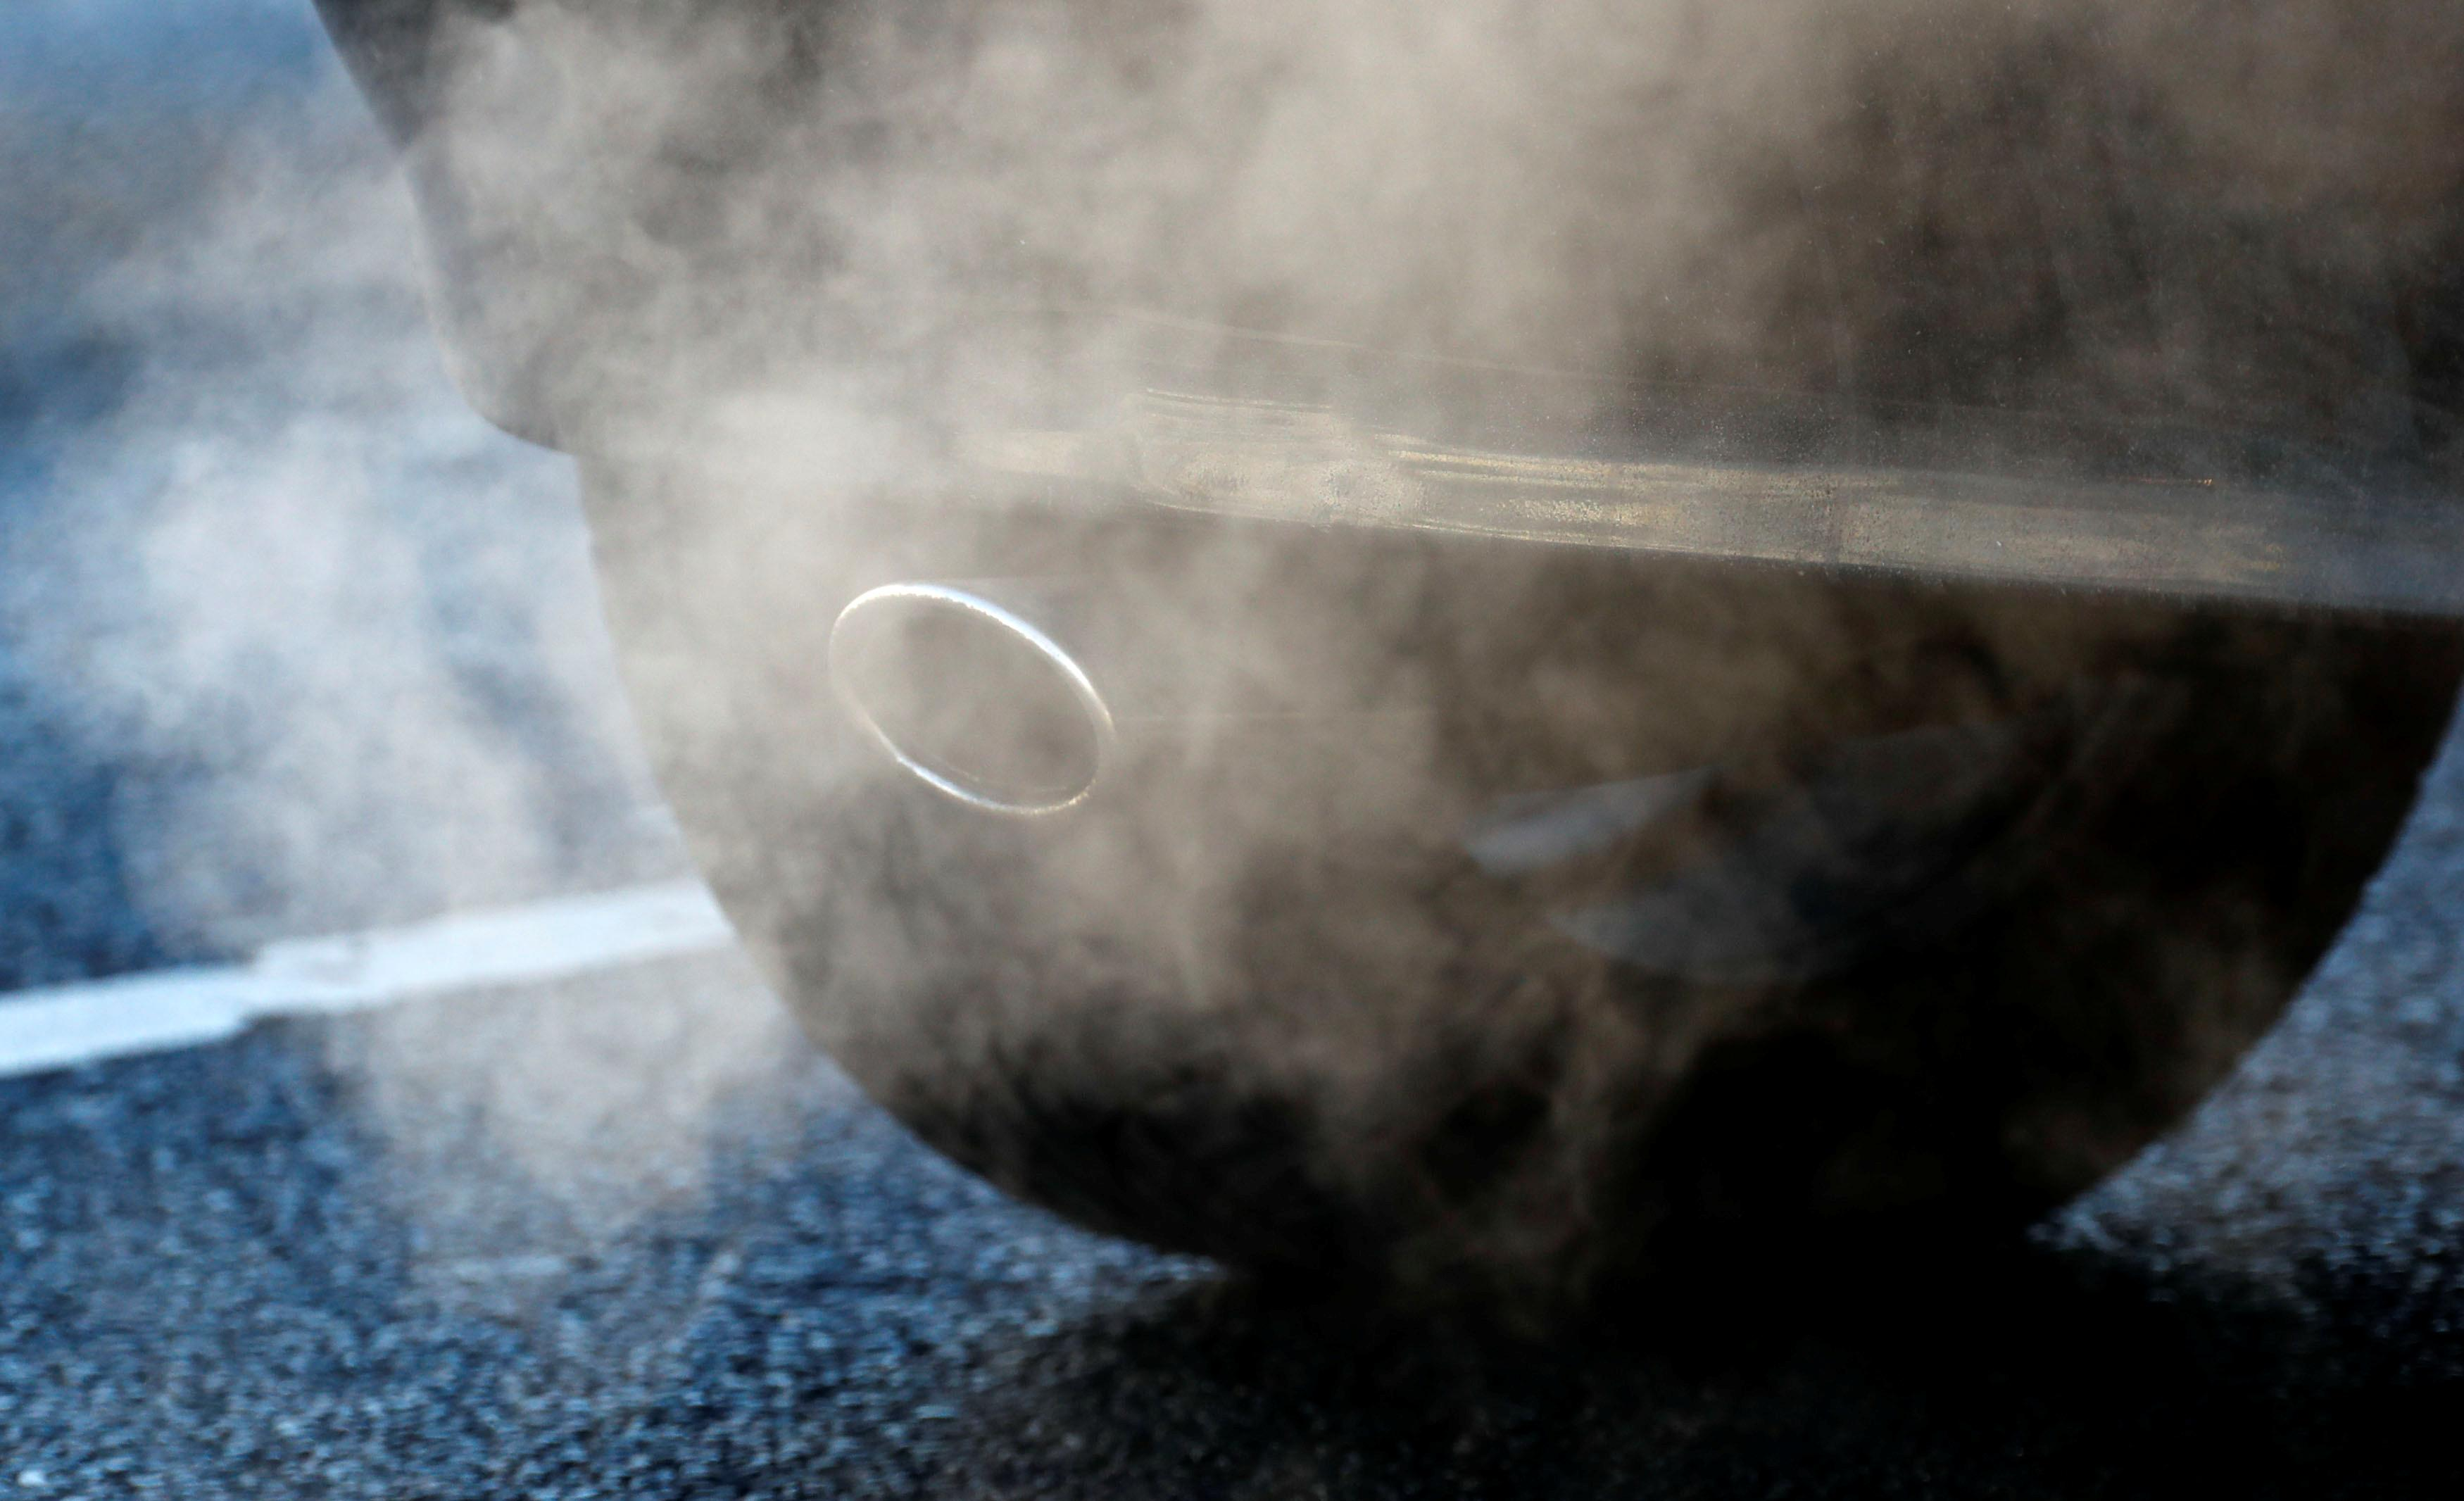 An exhaust pipe of a car is pictured on a street in a Berlin, Germany, February 22, 2018. Fabrizio Bensch